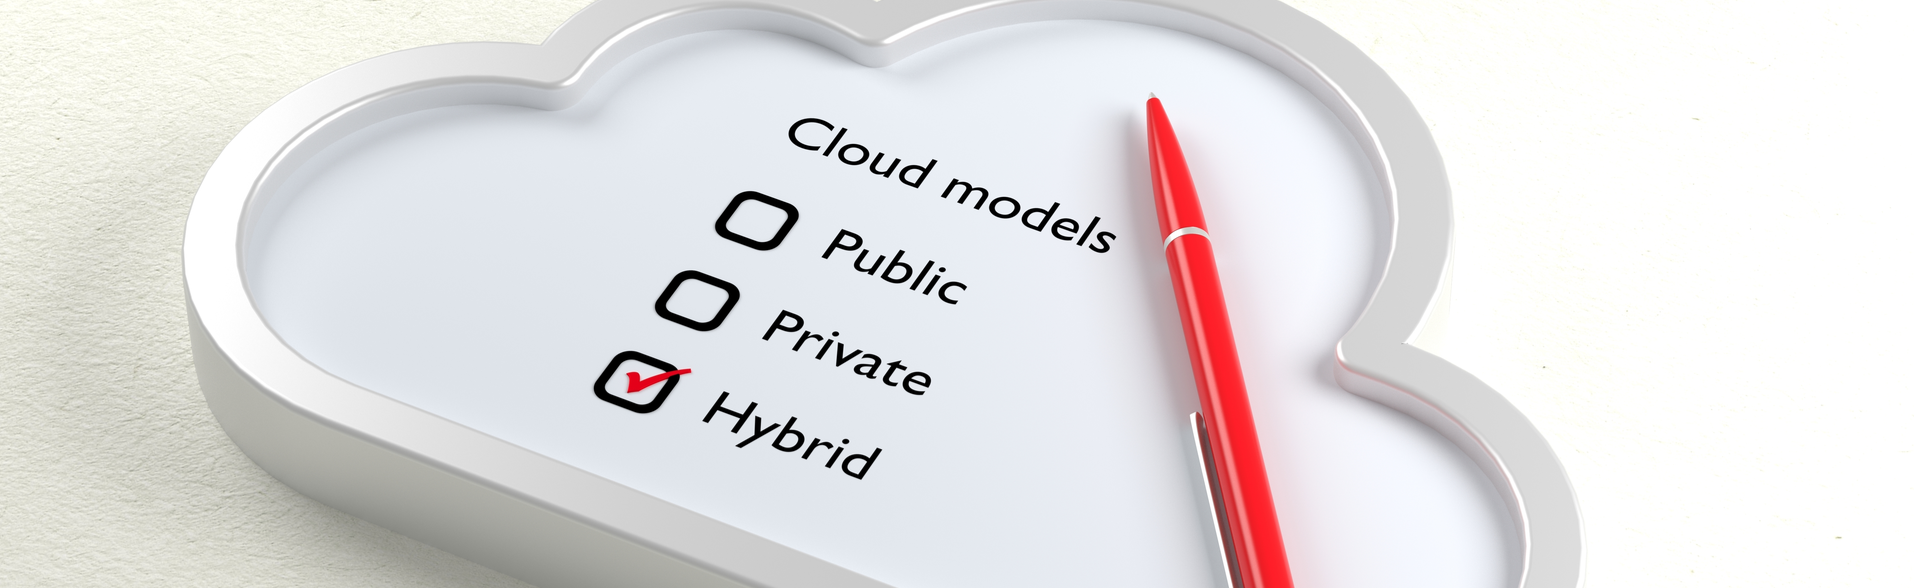 3 Ways to Add Cloud Backup to Your Hybrid Backup Strategy